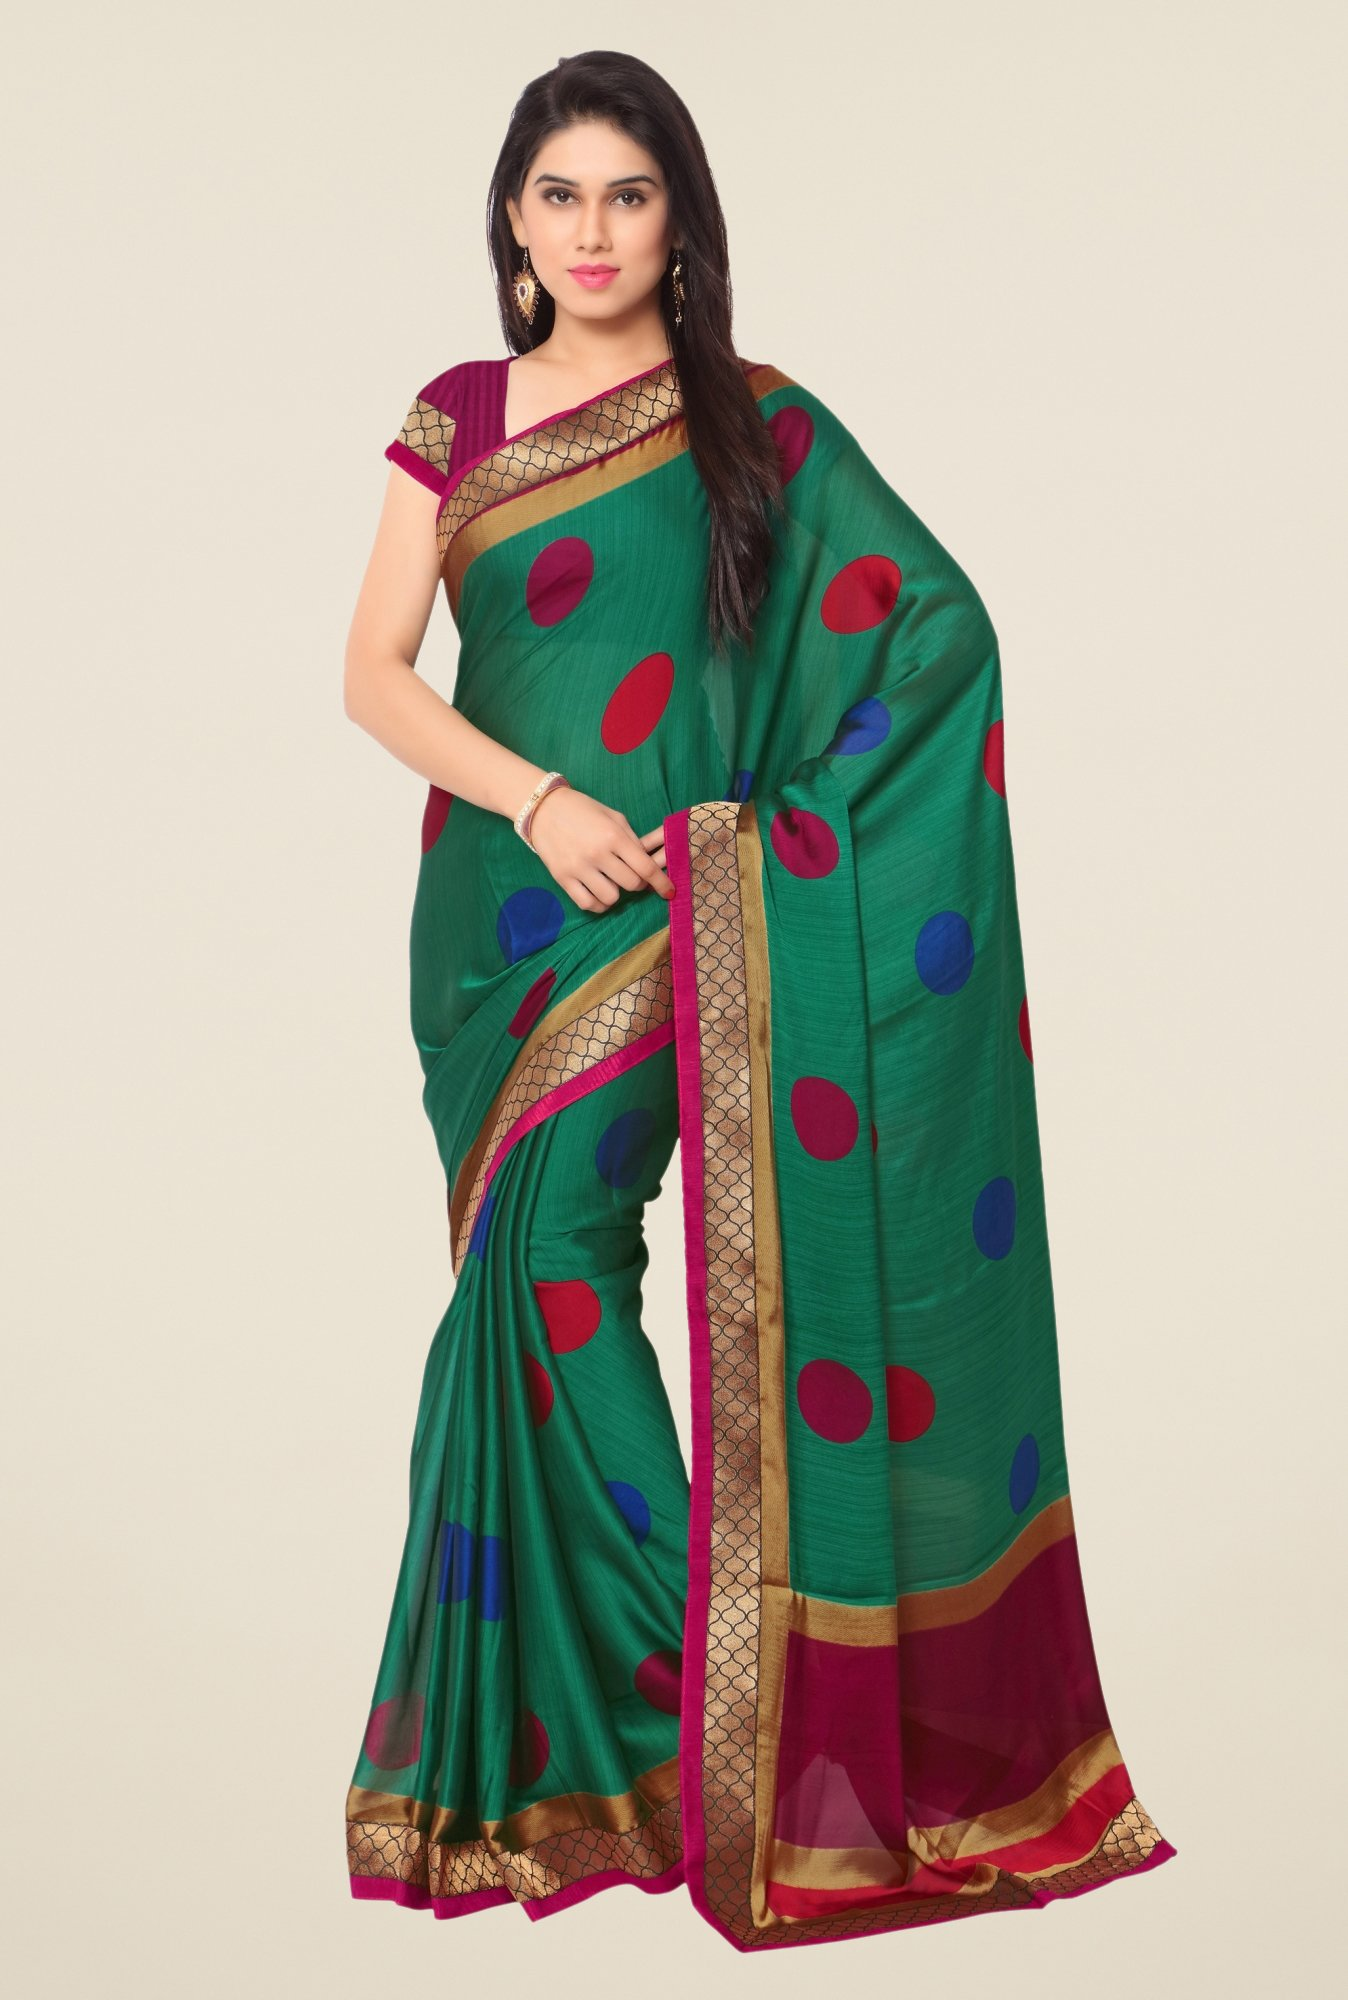 Triveni Green Printed Dry Clean Saree